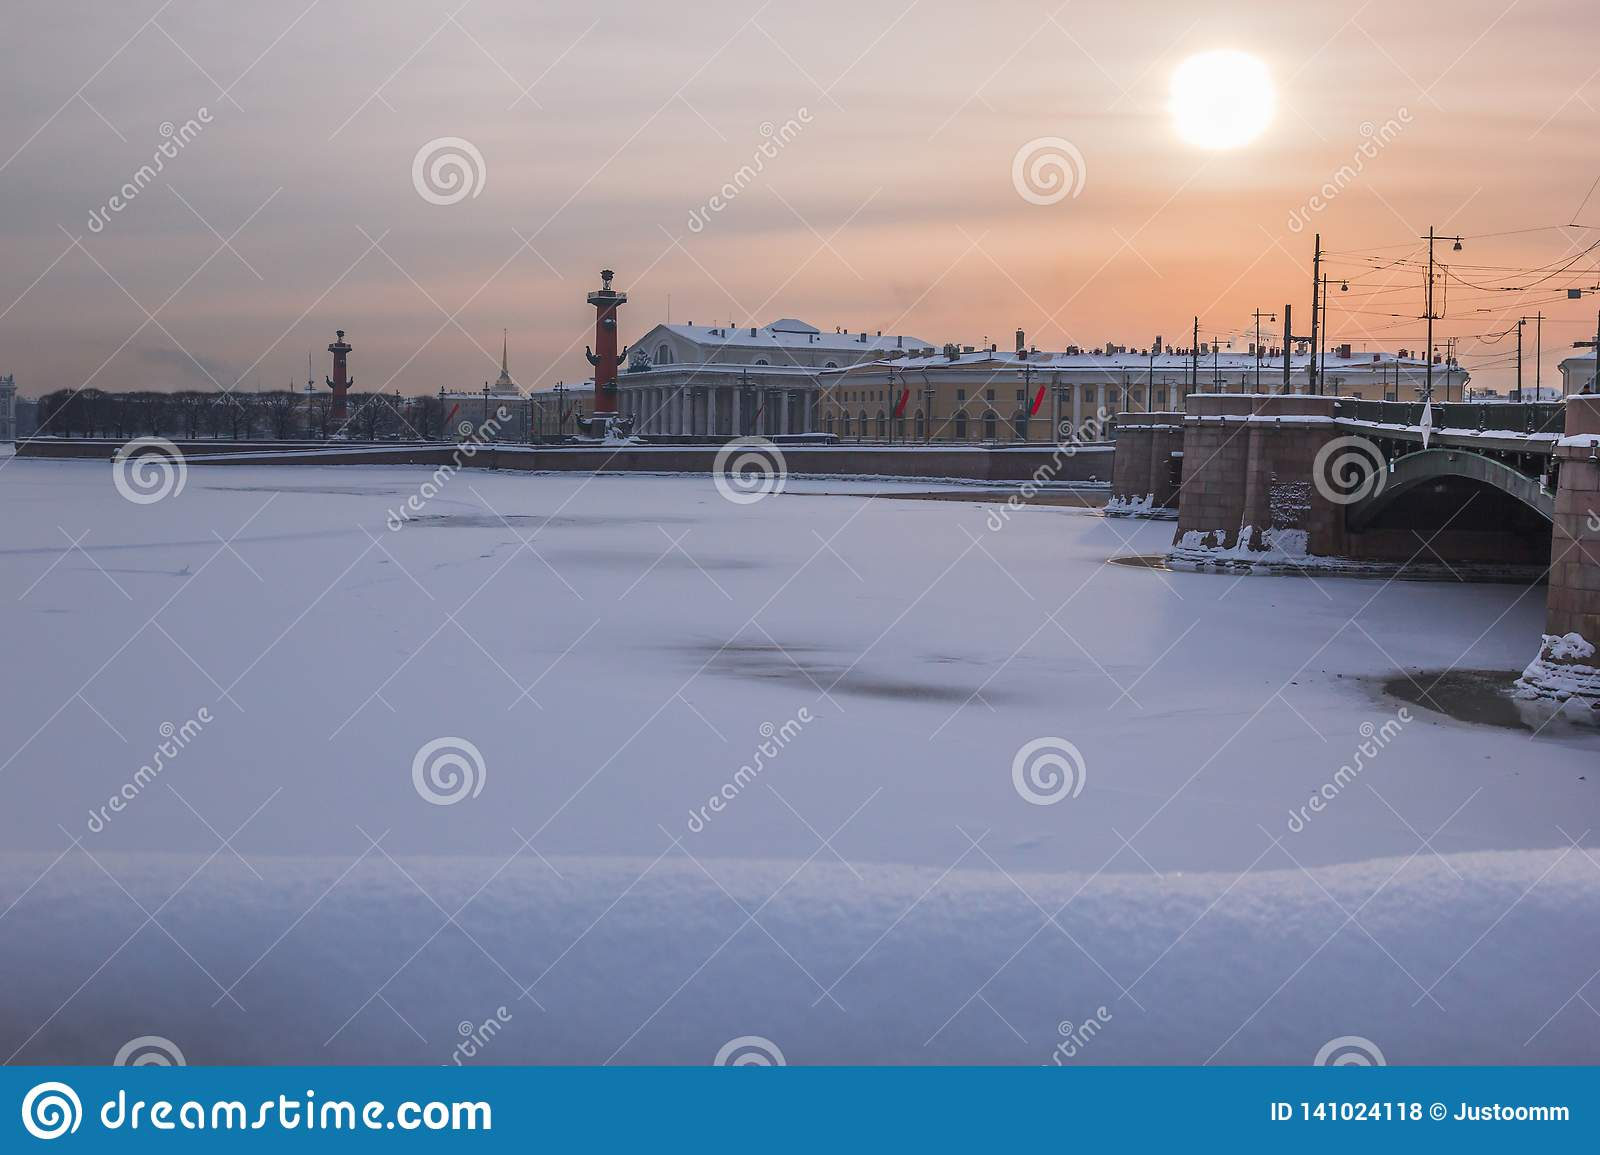 Saint Petersburg, Russia - January 27, 2019: Winter view of St. Petersburg, Russia, with the Palace Bridge, the Rostral